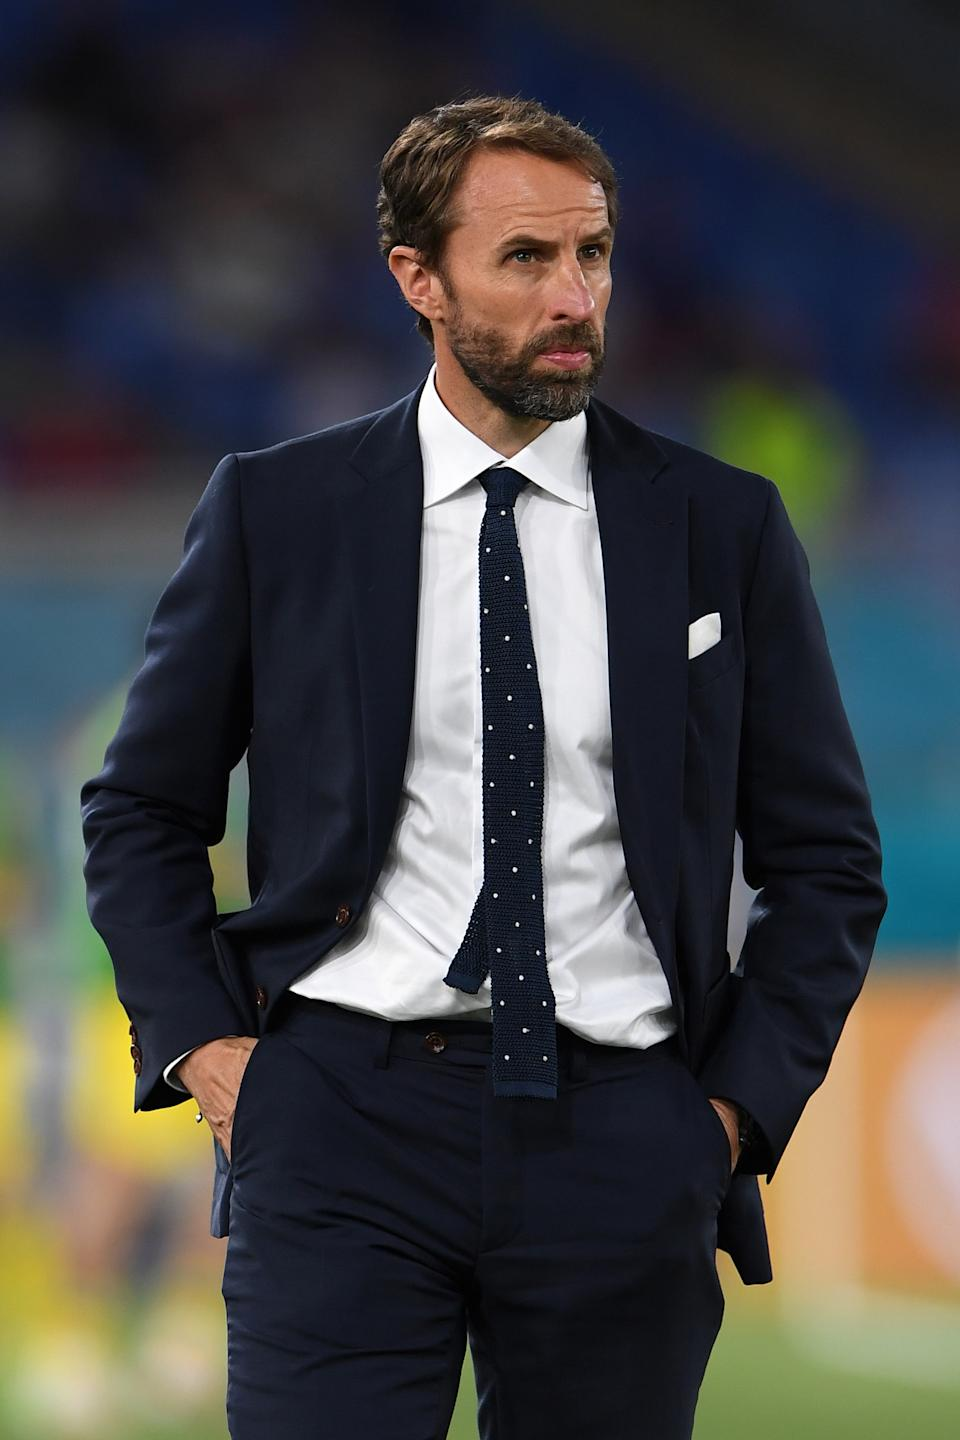 Gareth Southgate's navy polka dot tie is said to be the